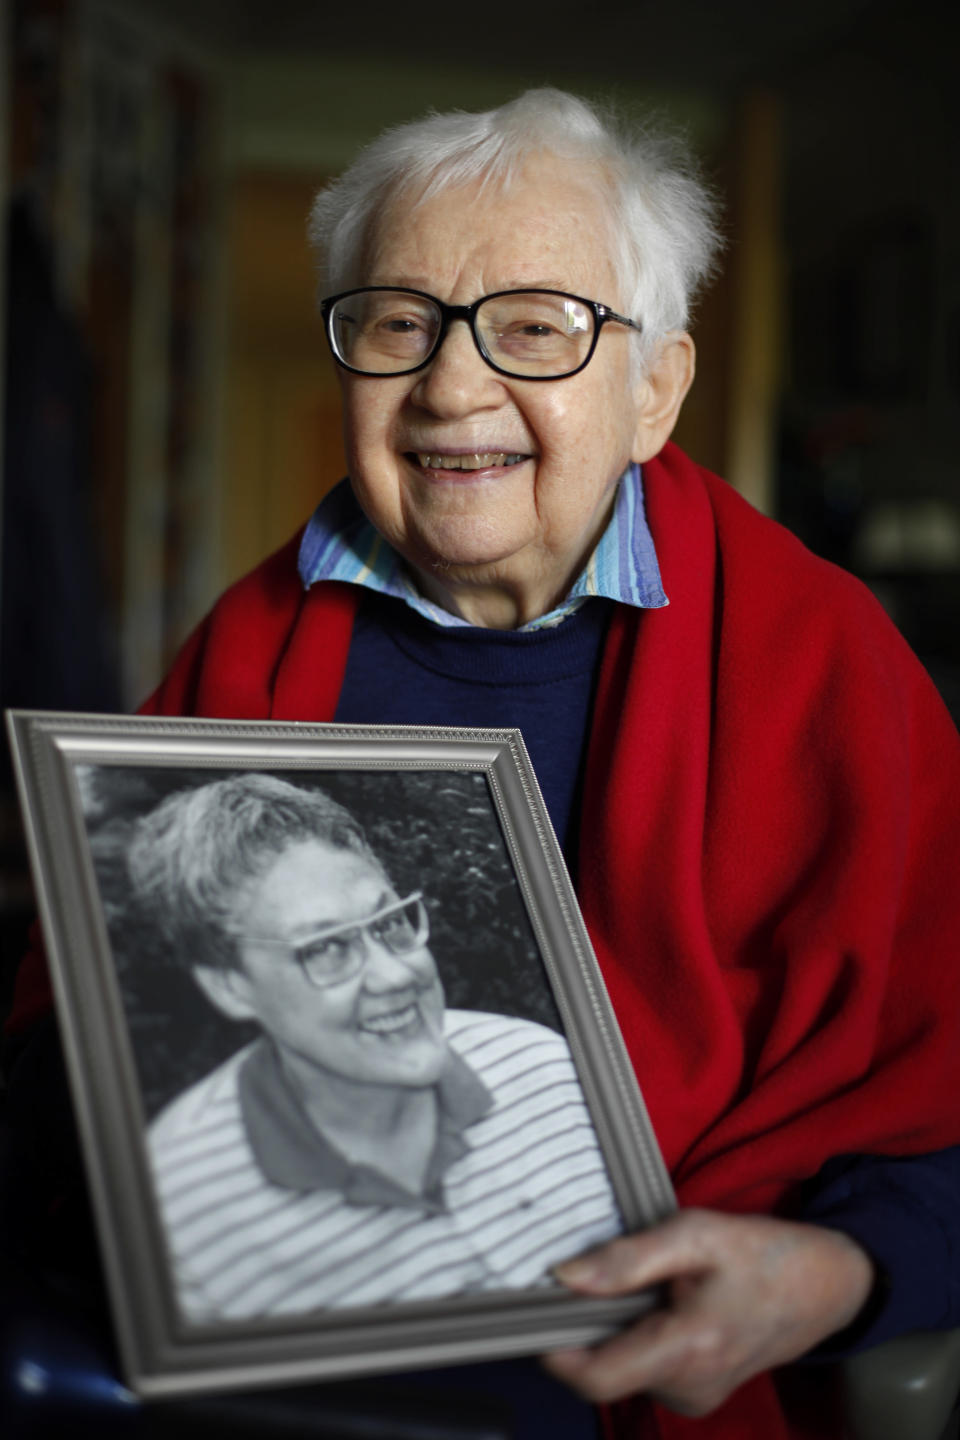 FILE - In this May 10, 2012 file photo, Kay Tobin Lahusen poses for a photograph with a portrait of her late partner Barbara Gittings, in Kennett Square, Pa. Lahusen, a pioneering gay rights activist who chronicled the movement's earliest days through her photography and writing, has died. She was 91. Known as the first openly gay photojournalist, Lahusen died Wednesday, May 26, 2021, at Chester County Hospital outside Philadelphia following a brief illness, according to Founds Funeral Home. (AP Photo/Matt Rourke, File)